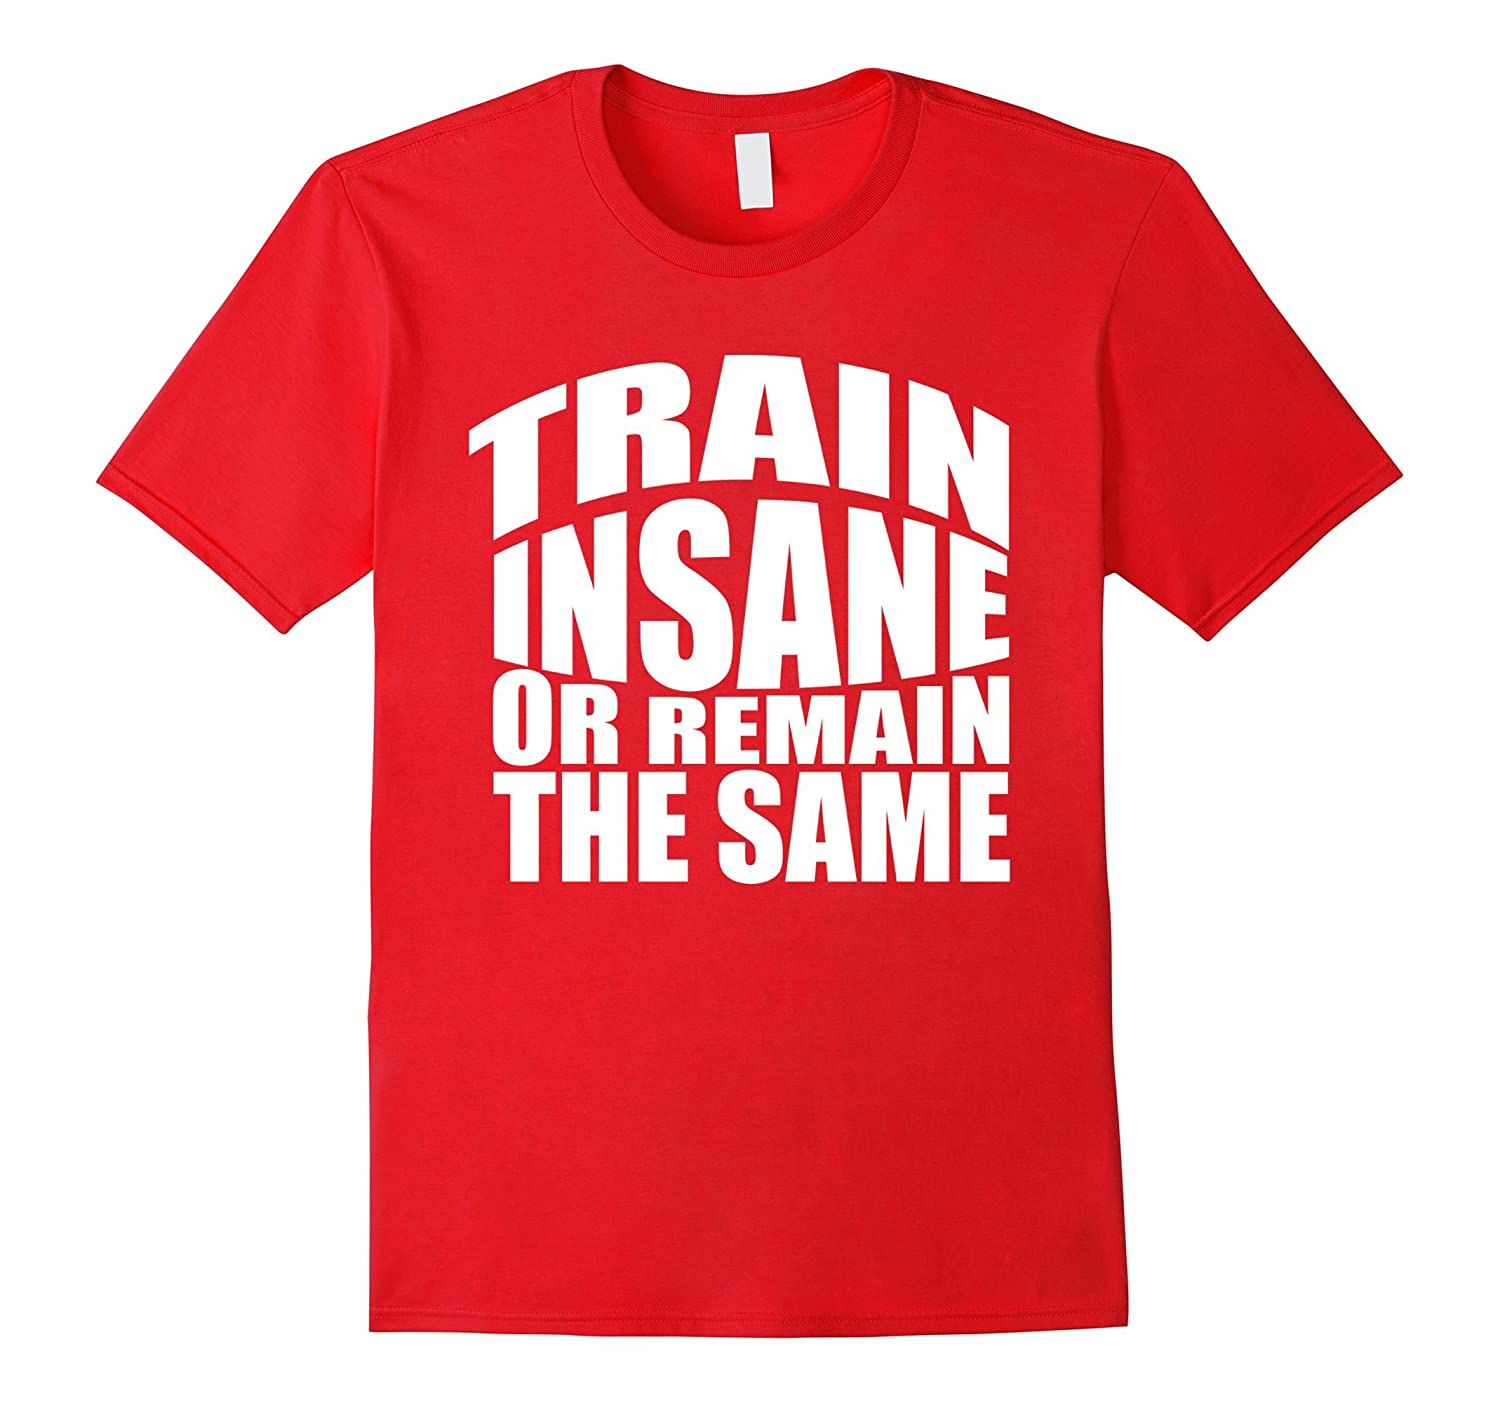 TRAIN INSANE OR REMAIN THE SAME TShirt Workout Gym Fitness W-TJ